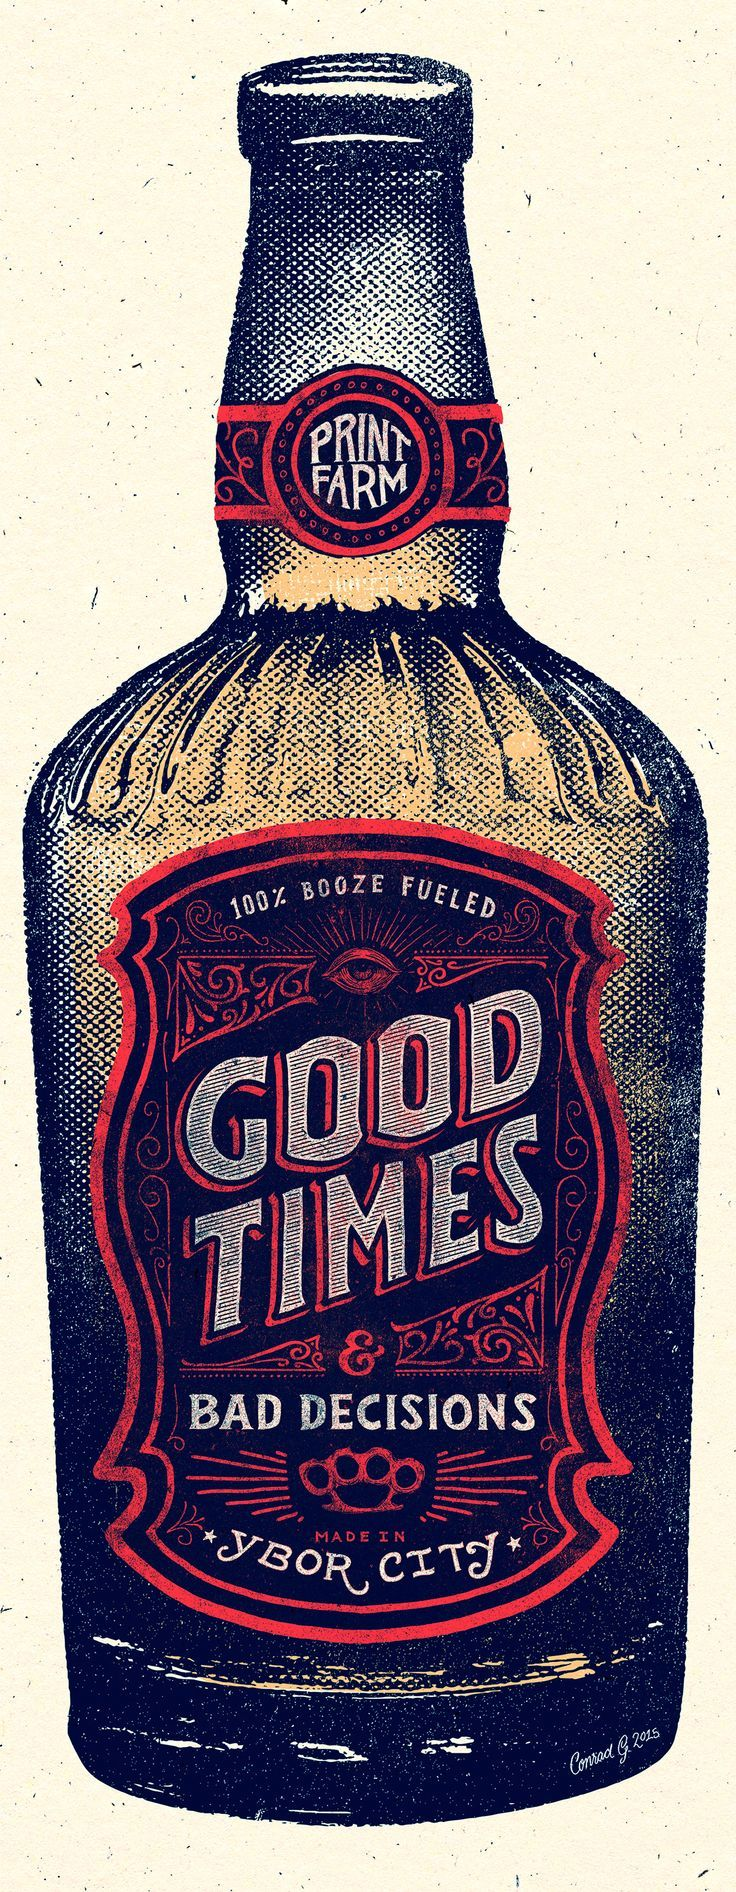 Chaves- Category: Image and Type Good Times and bad decisions by Conrad Garner Screen printed design style that uses halftone. Love the bottle label and the entire concept. The bottle is beautifully illustrated as well.